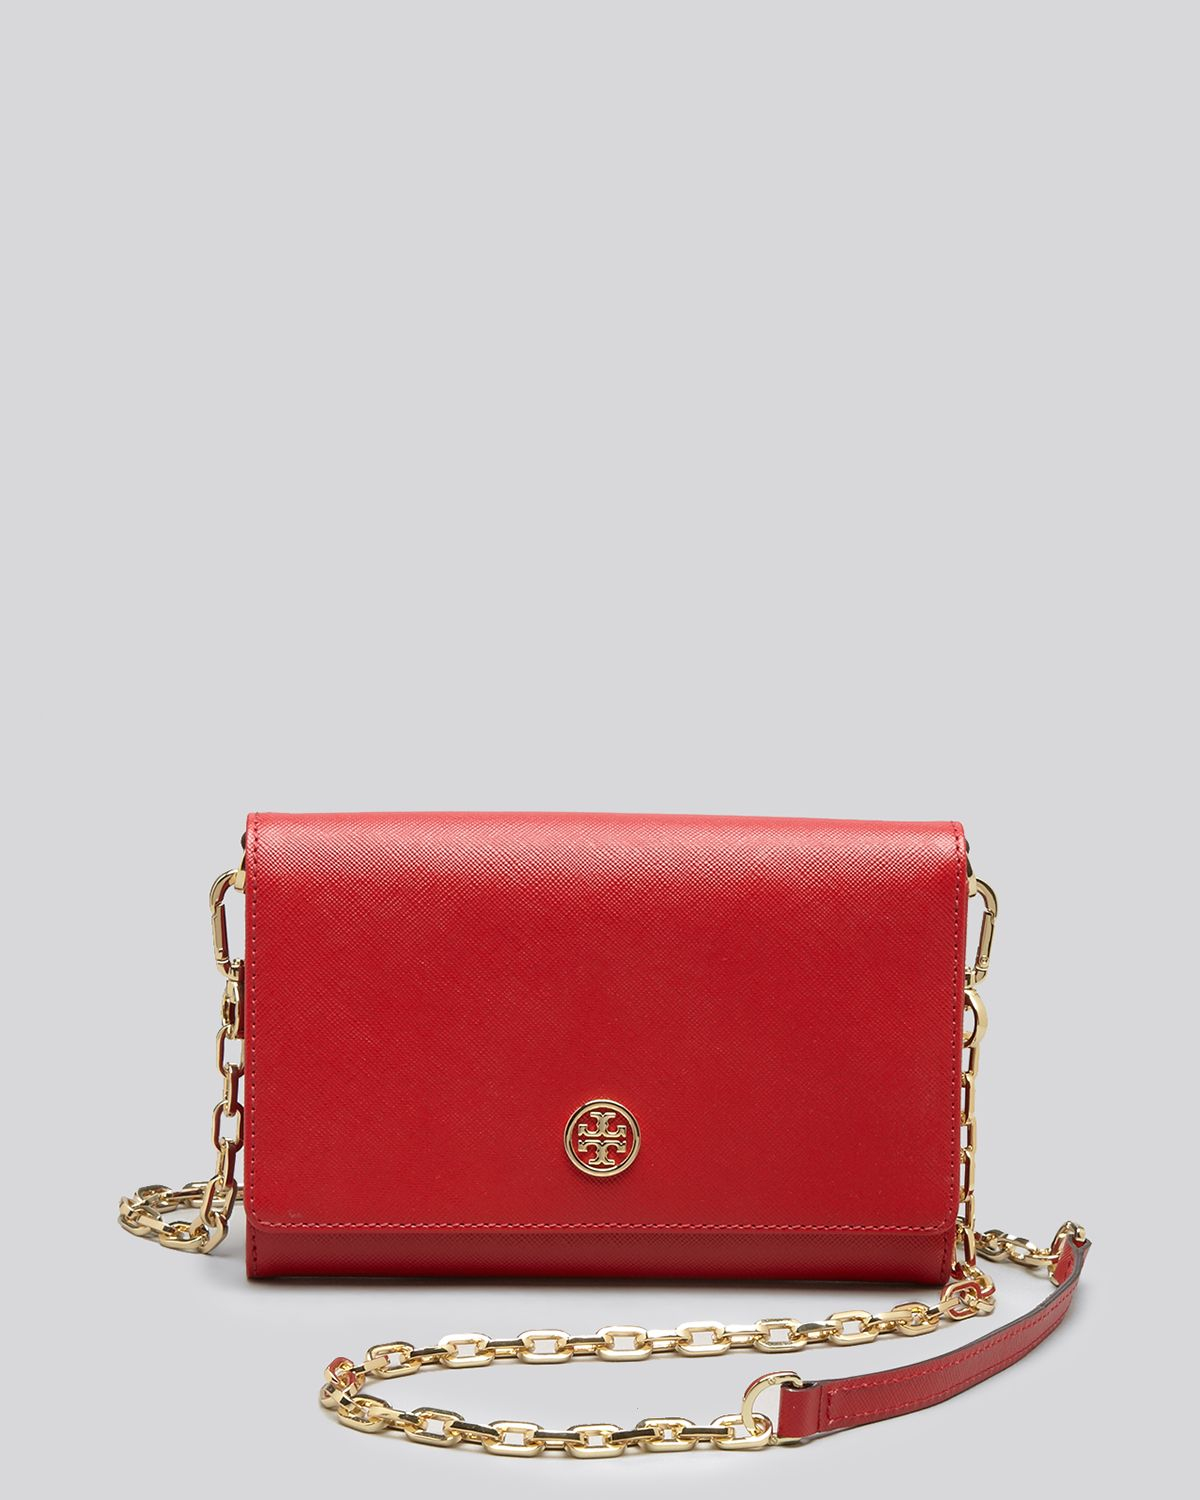 56a49cec6e3 Tory Burch Crossbody Robinson Metallic Wallet On A Chain in Red - Lyst